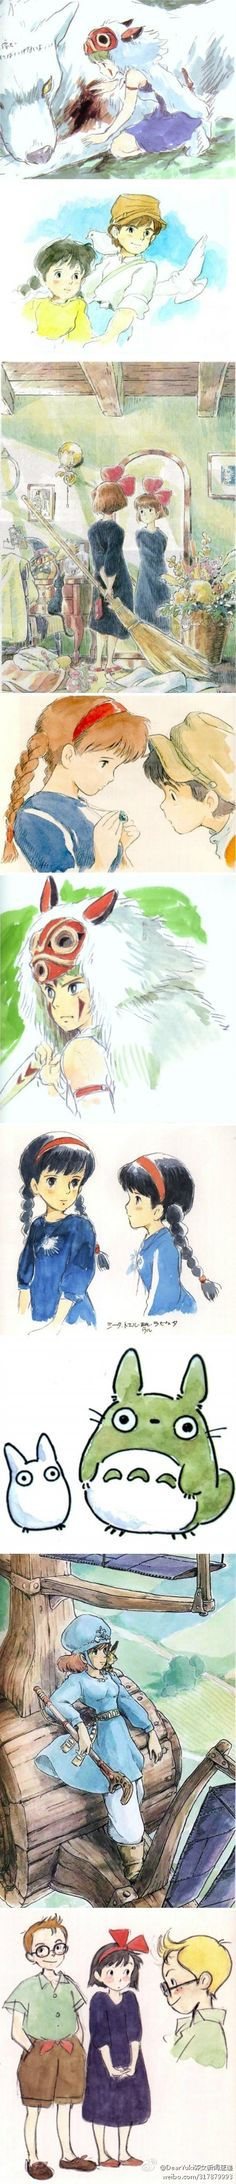 I have a soft spot for sketches and rough drafts of character design.  Hayao Miyazaki is incredibly talented and unique animation style breathes life into his work.